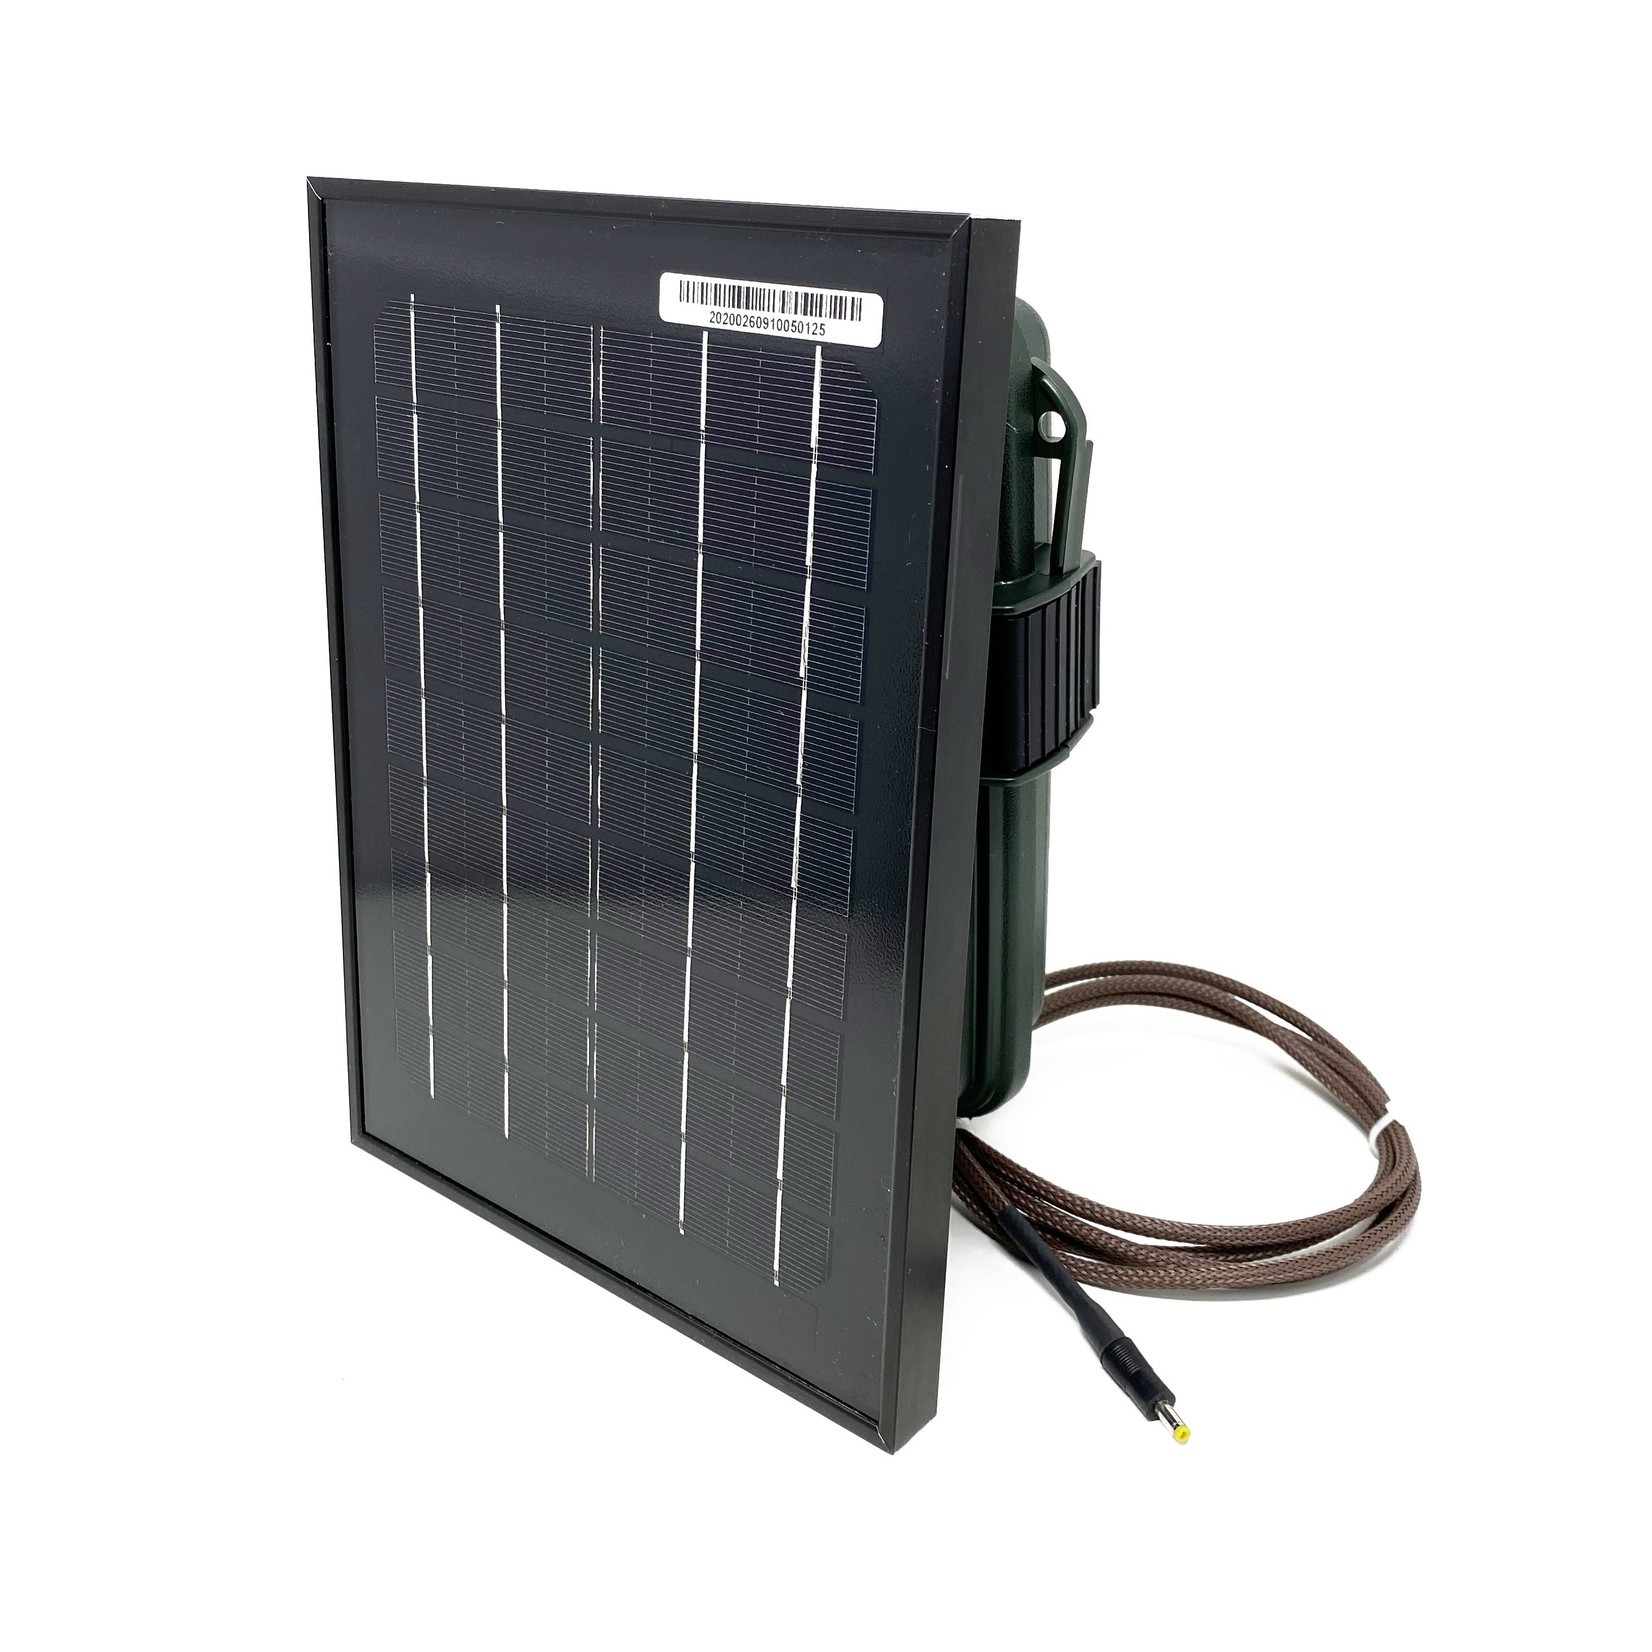 Boly Boly Solar Kit 6V w/ power cable with rodent resistant shield